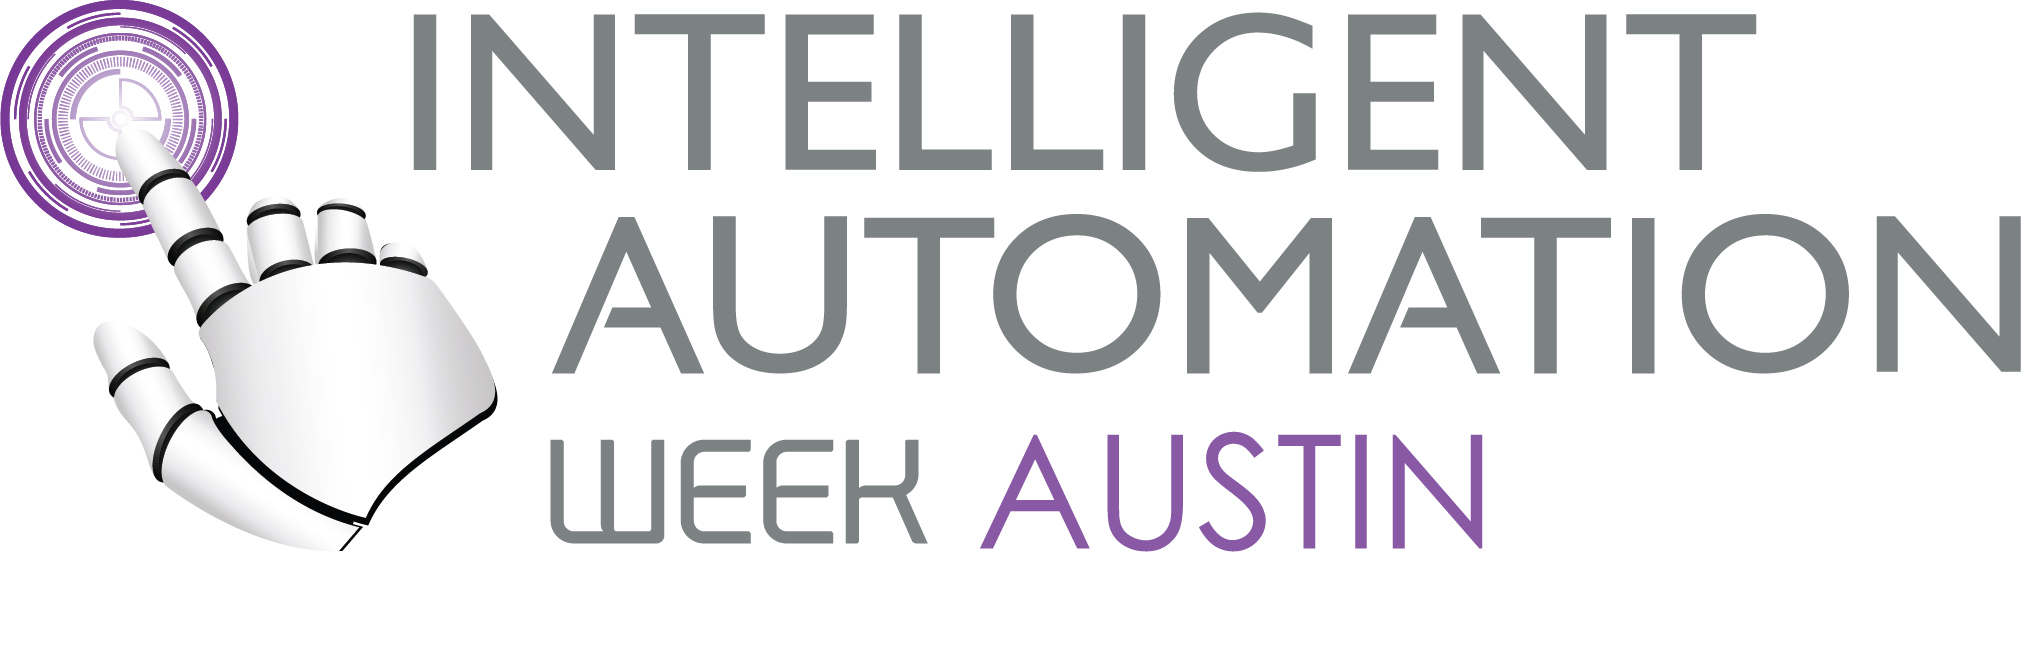 IntelligenceAutomation_Austin